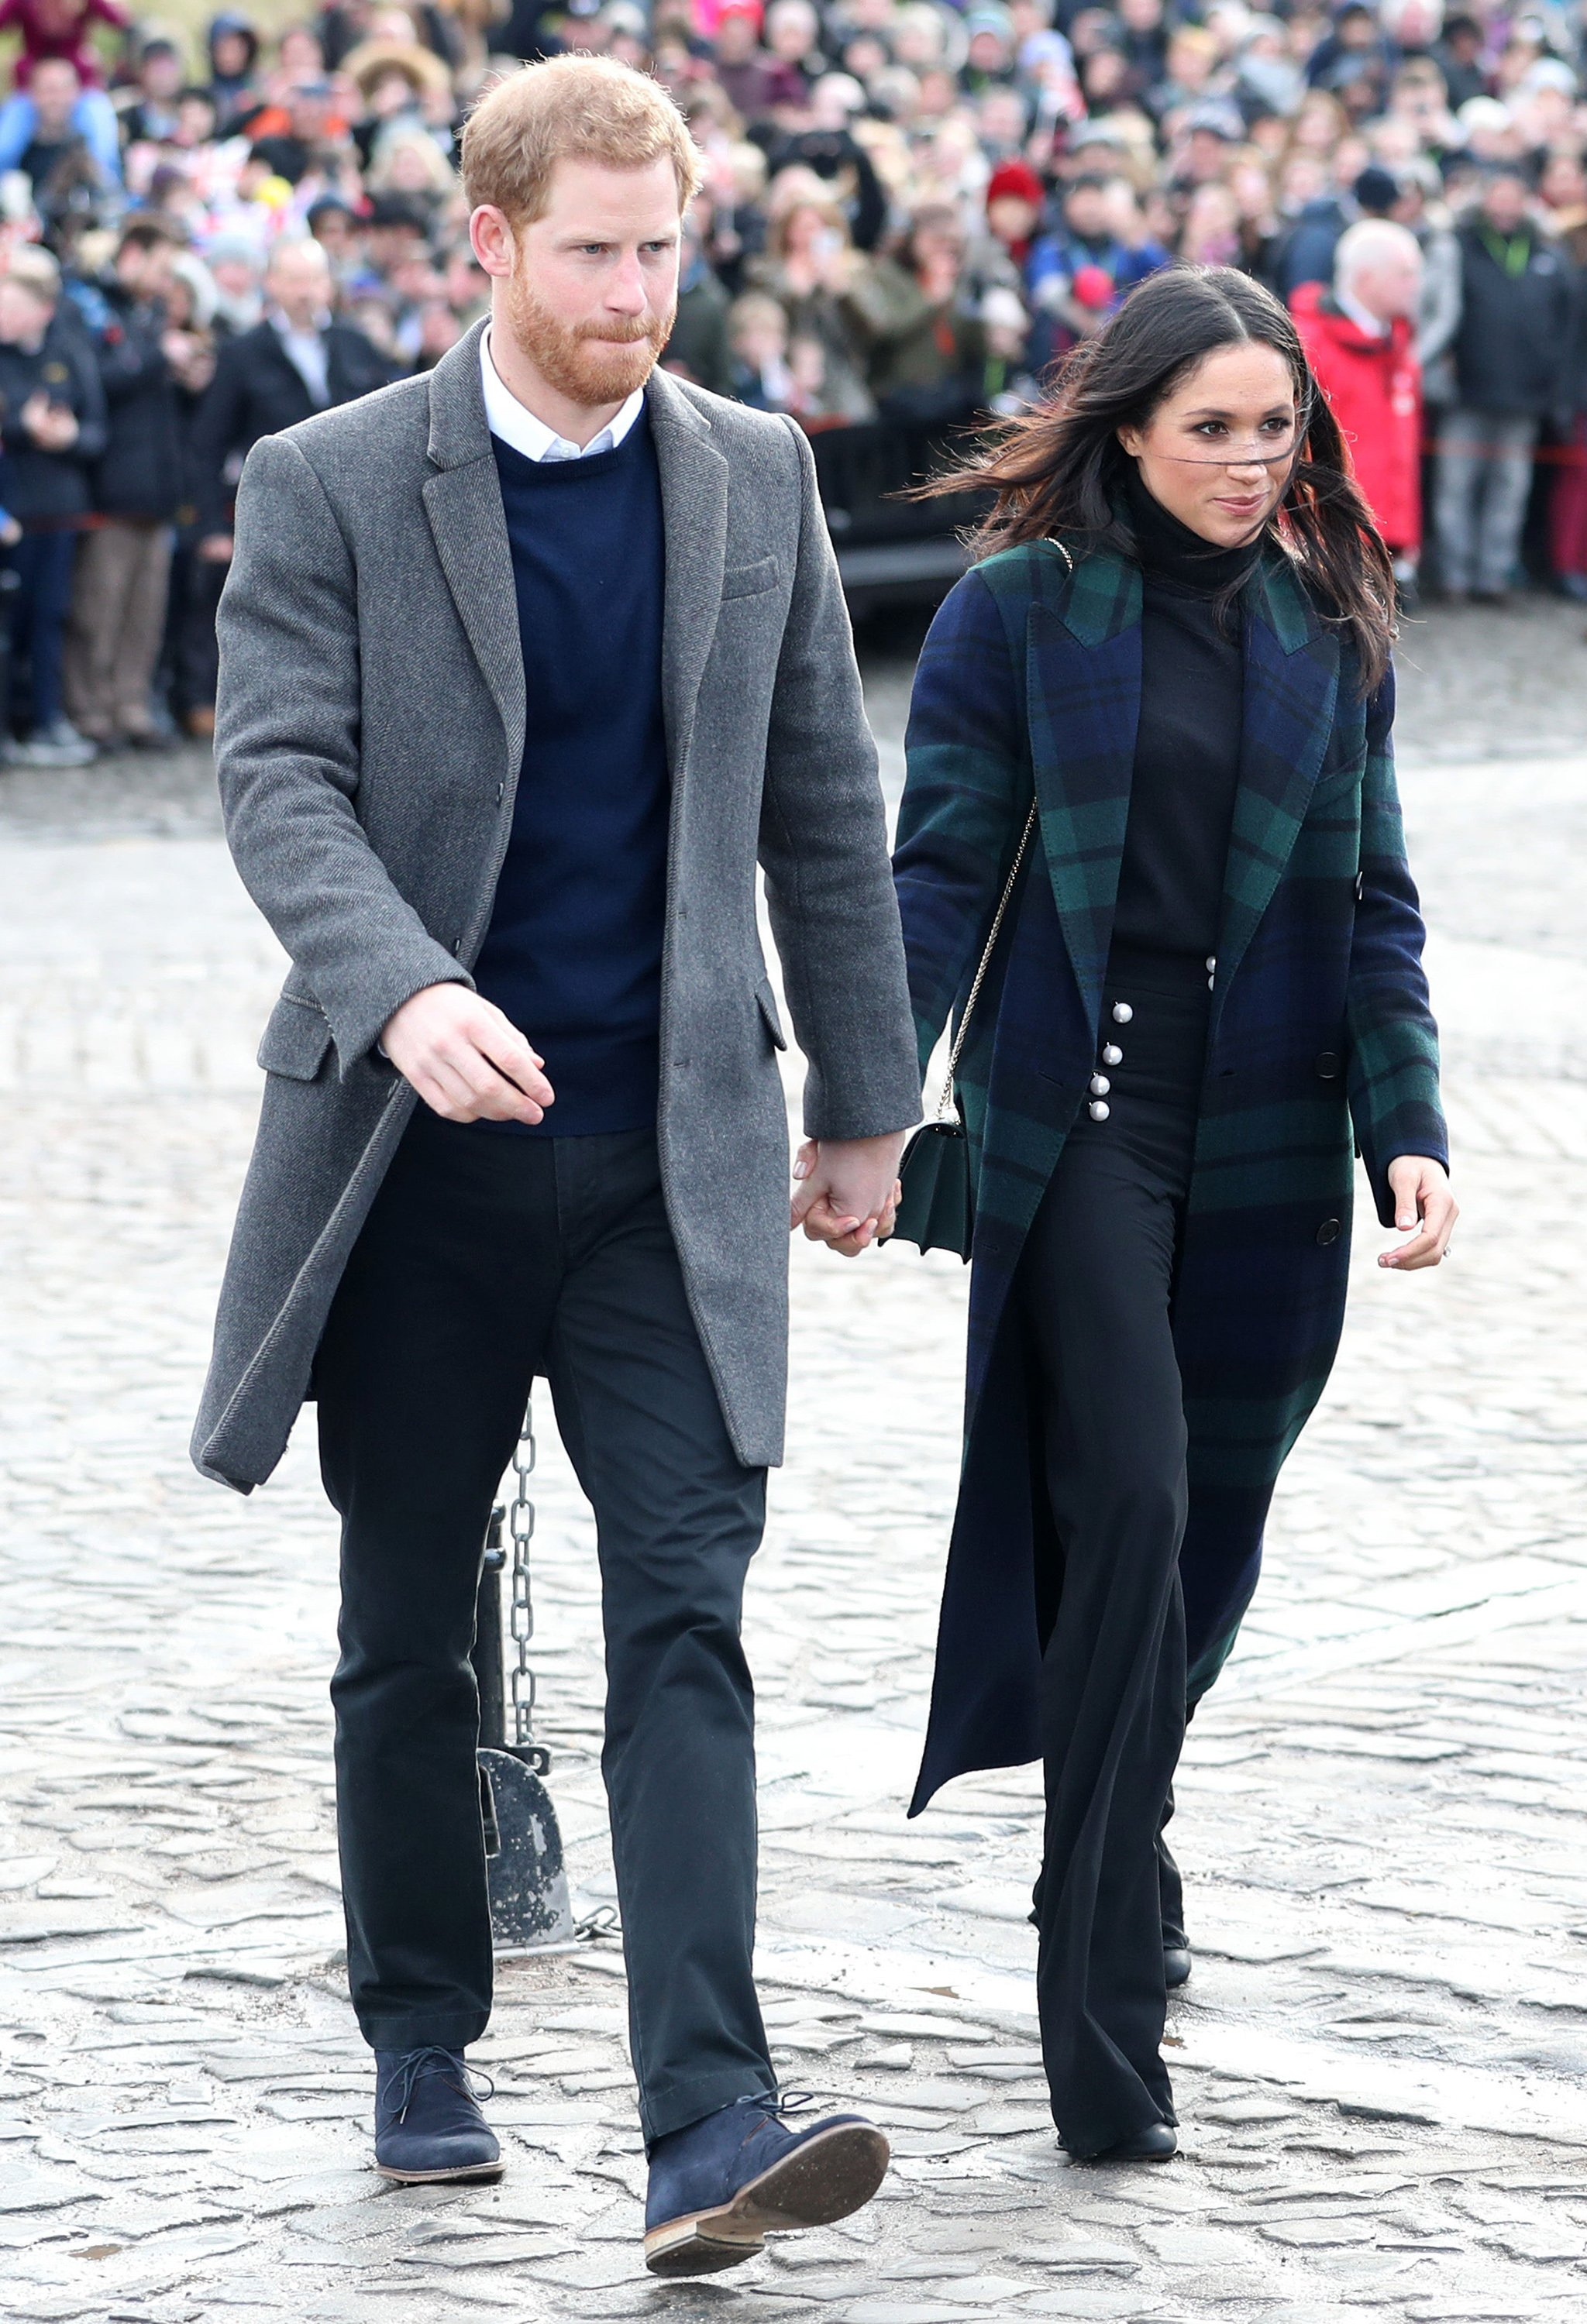 Prince Harry and Meghan Markle visit Edinburgh Castle, Edinburgh, UK, on the 13th February 2018.  Picture by Jane Barlow/WPA-Pool. 13 Feb 2018 Pictured: Prince Harry, Meghan Markle., Image: 363190221, License: Rights-managed, Restrictions: NO United Kingdom, Model Release: no, Credit line: Profimedia, Mega Agency